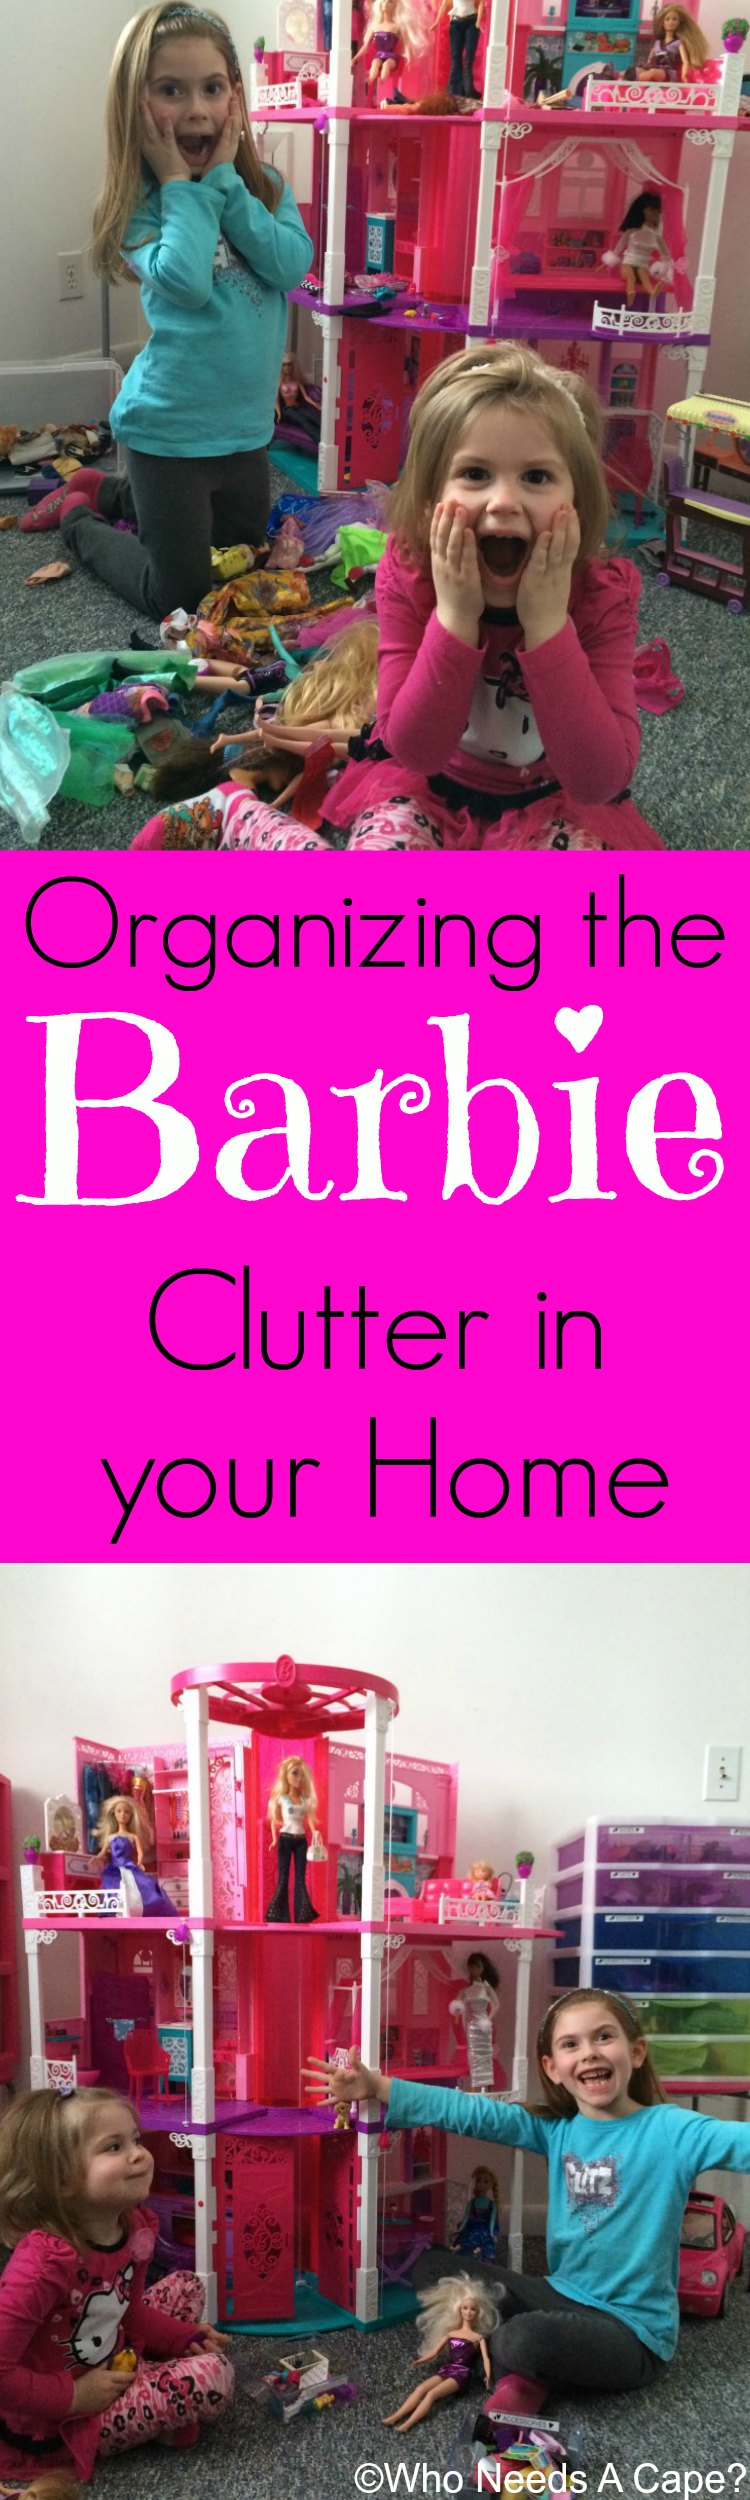 Organizing The Barbie Clutter In Your Home